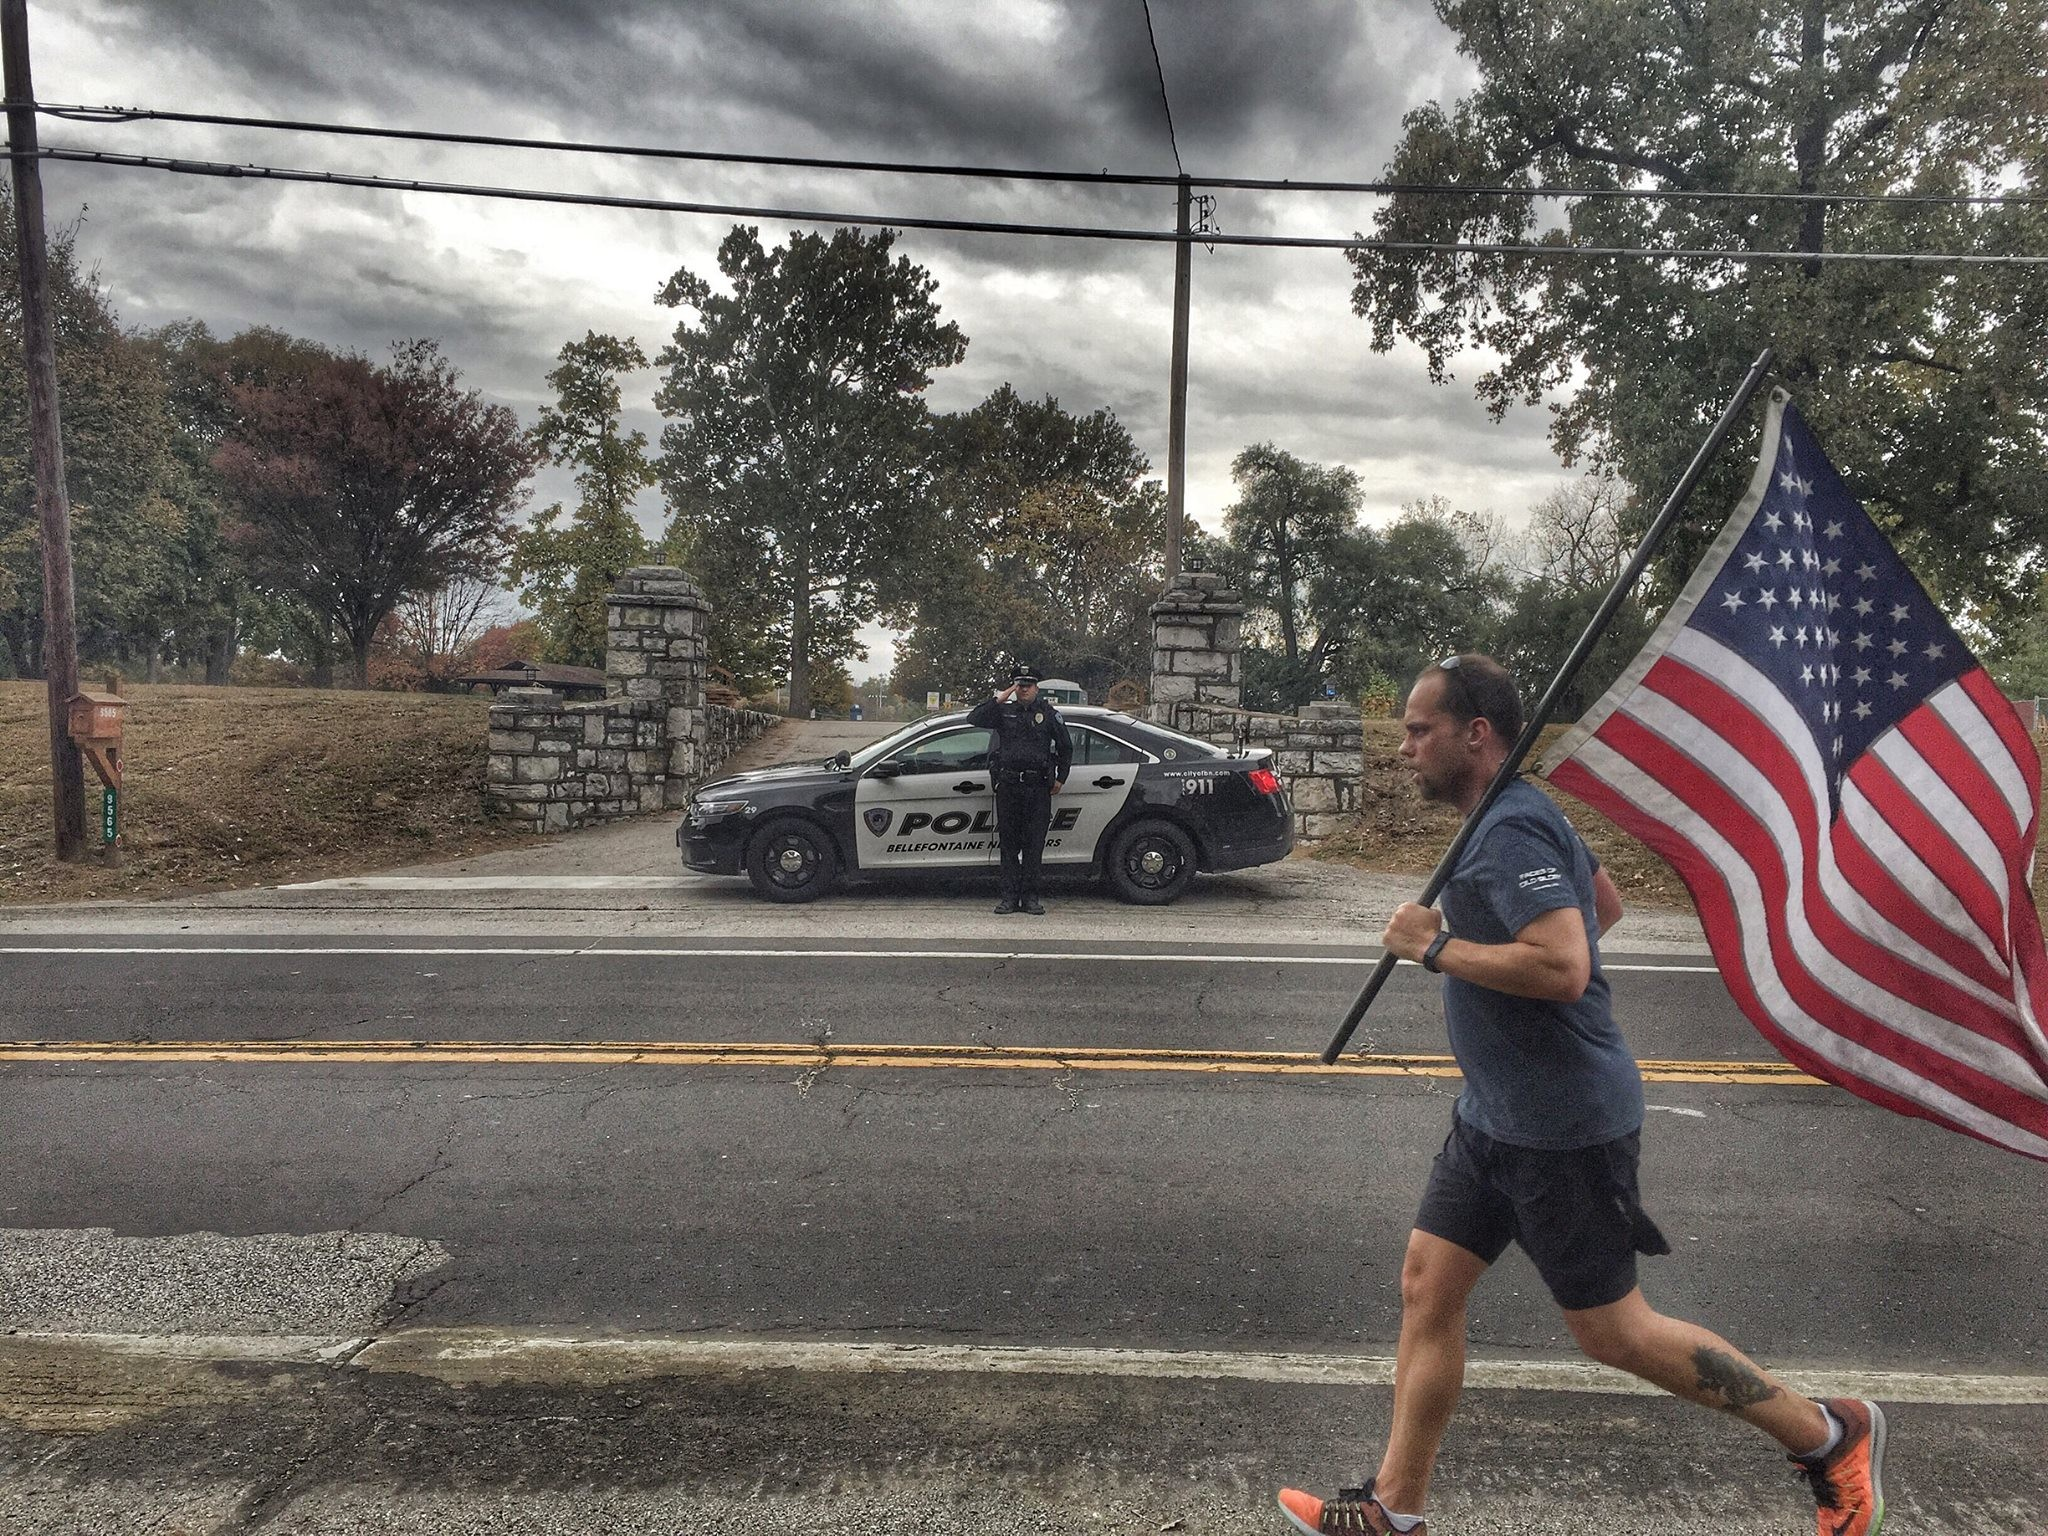 Slideshow: SLIDESHOW: Participants in 'Old Glory Run' carry U.S. flag on  3,540-mile journey